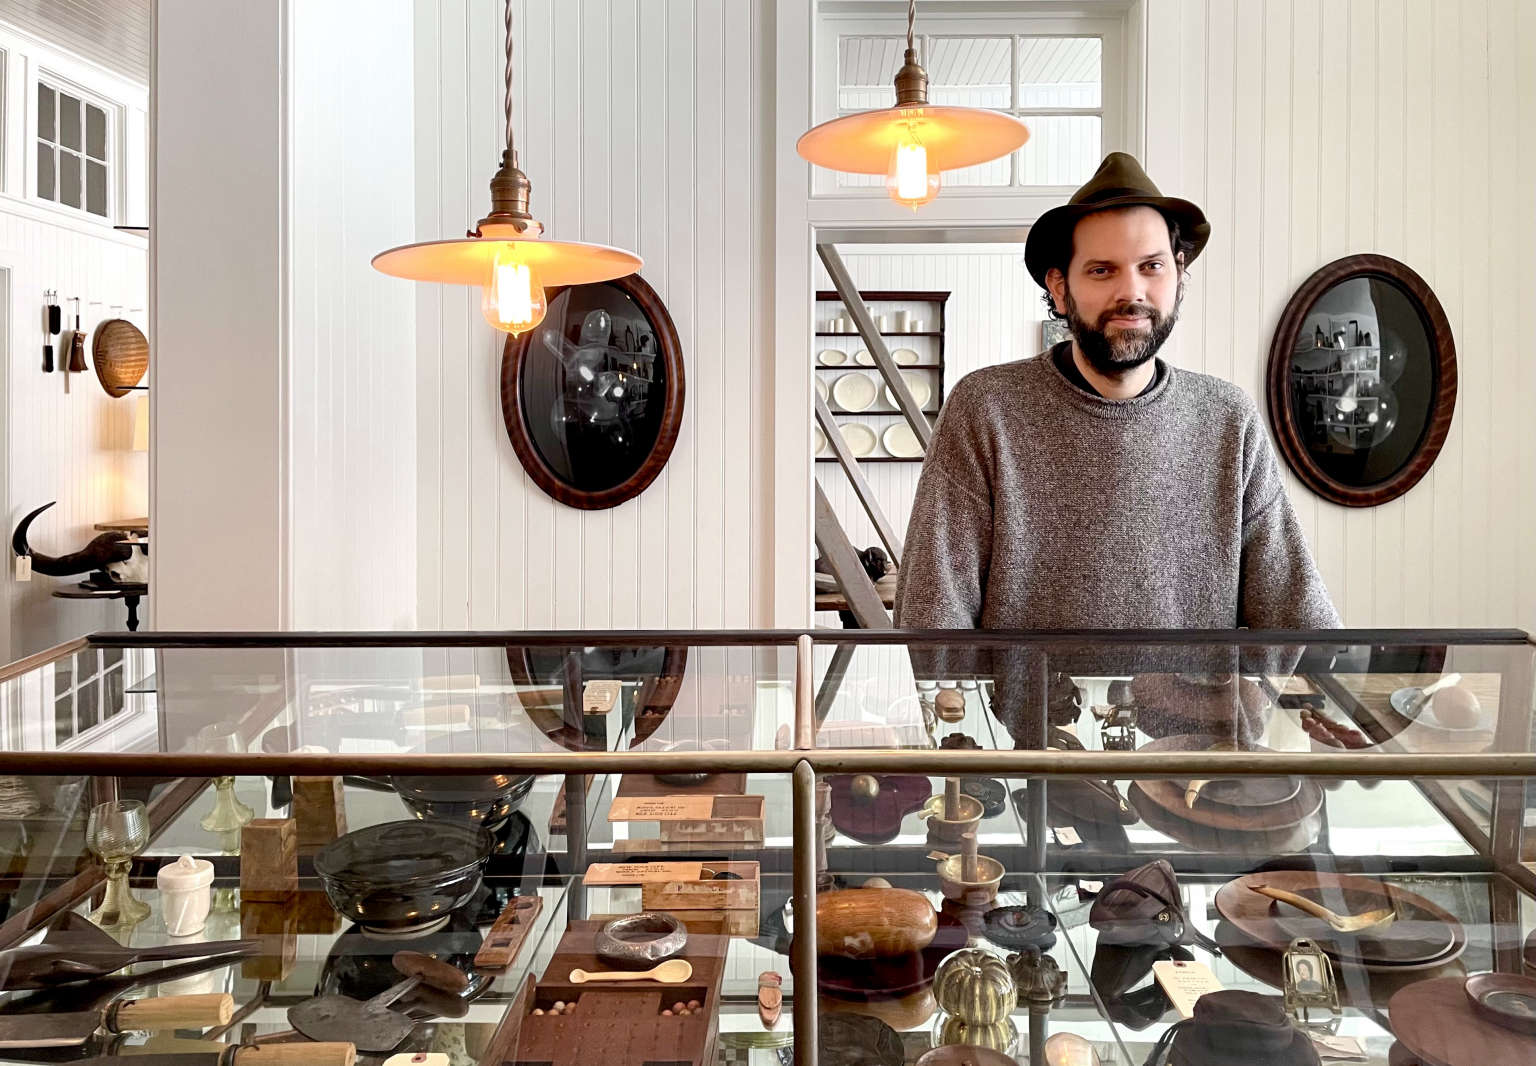 Shoppers Diary A PoetCollector Opens Pidgin in Upstate NY portrait 3